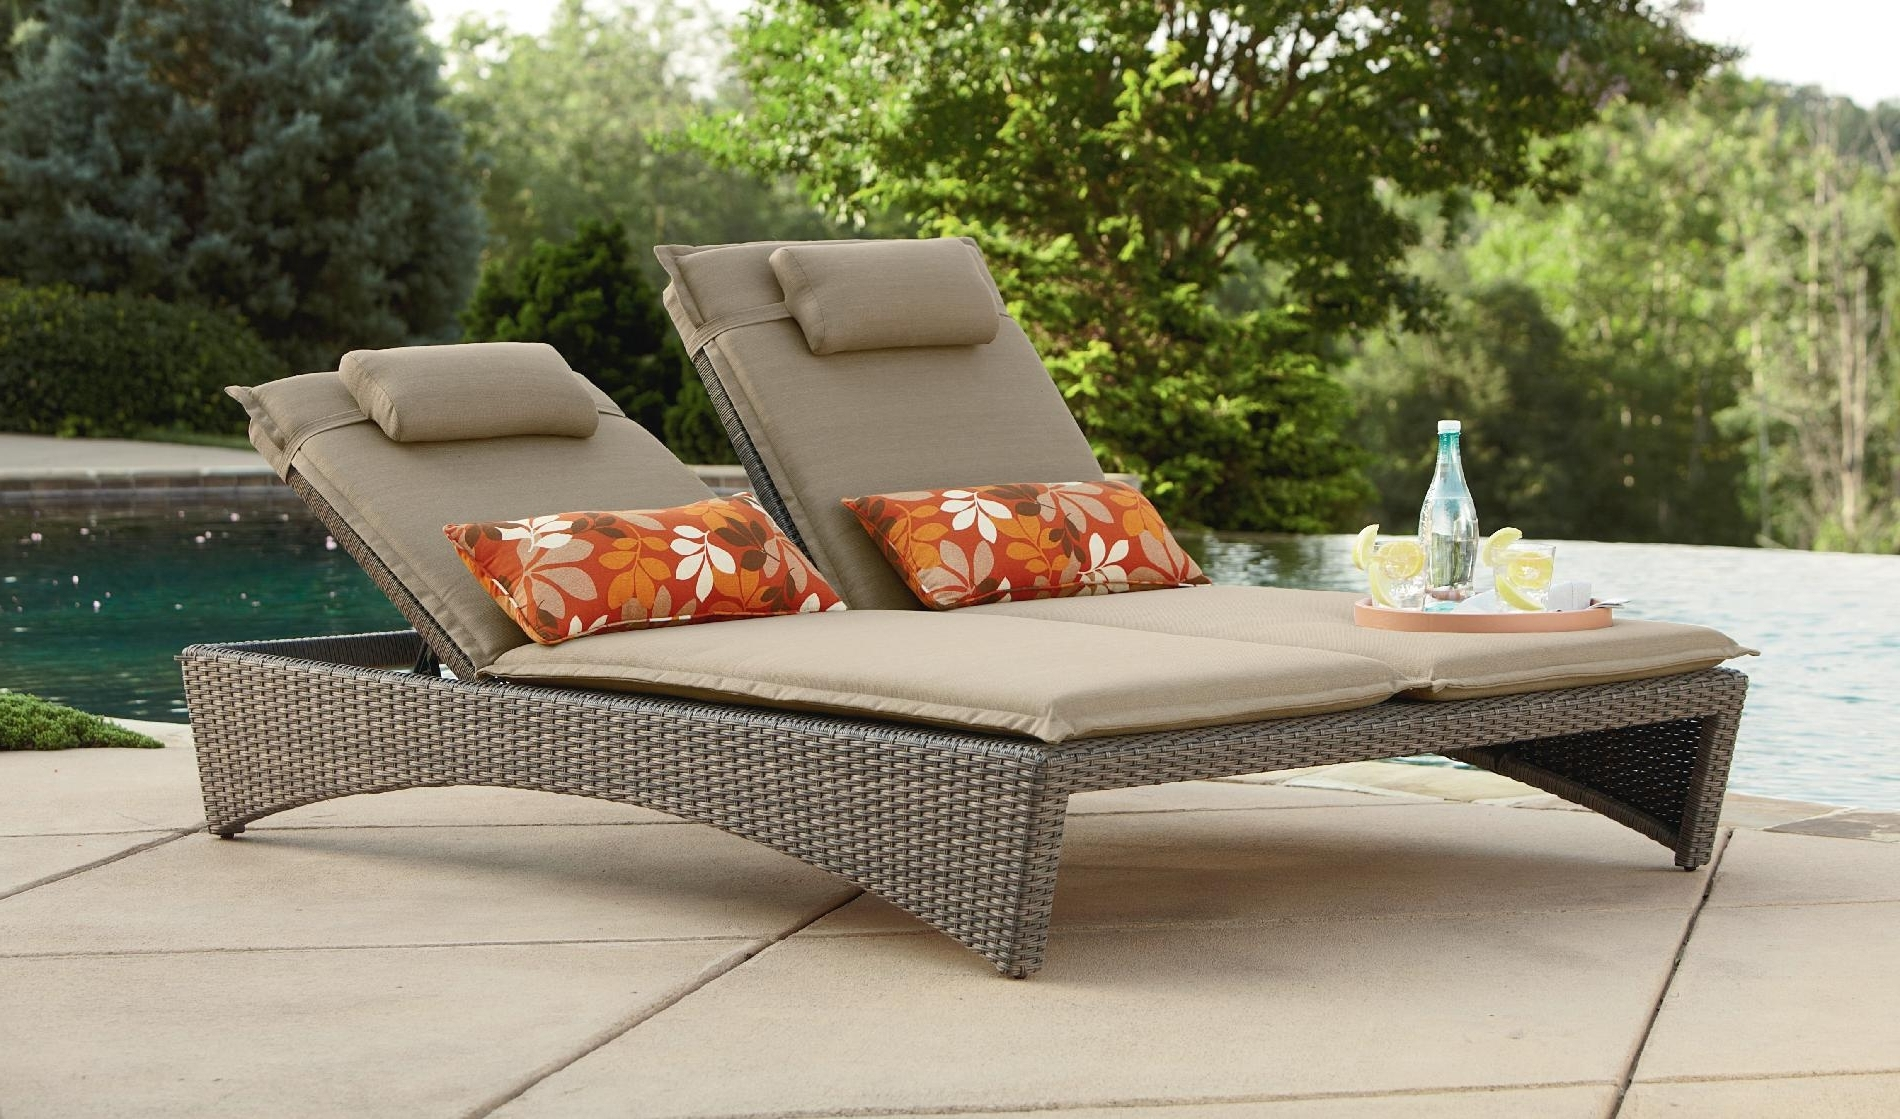 2017 Sears Chaise Lounge Chairs Patio Furniture • Lounge Chairs Ideas For Sears Chaise Lounges (View 2 of 15)